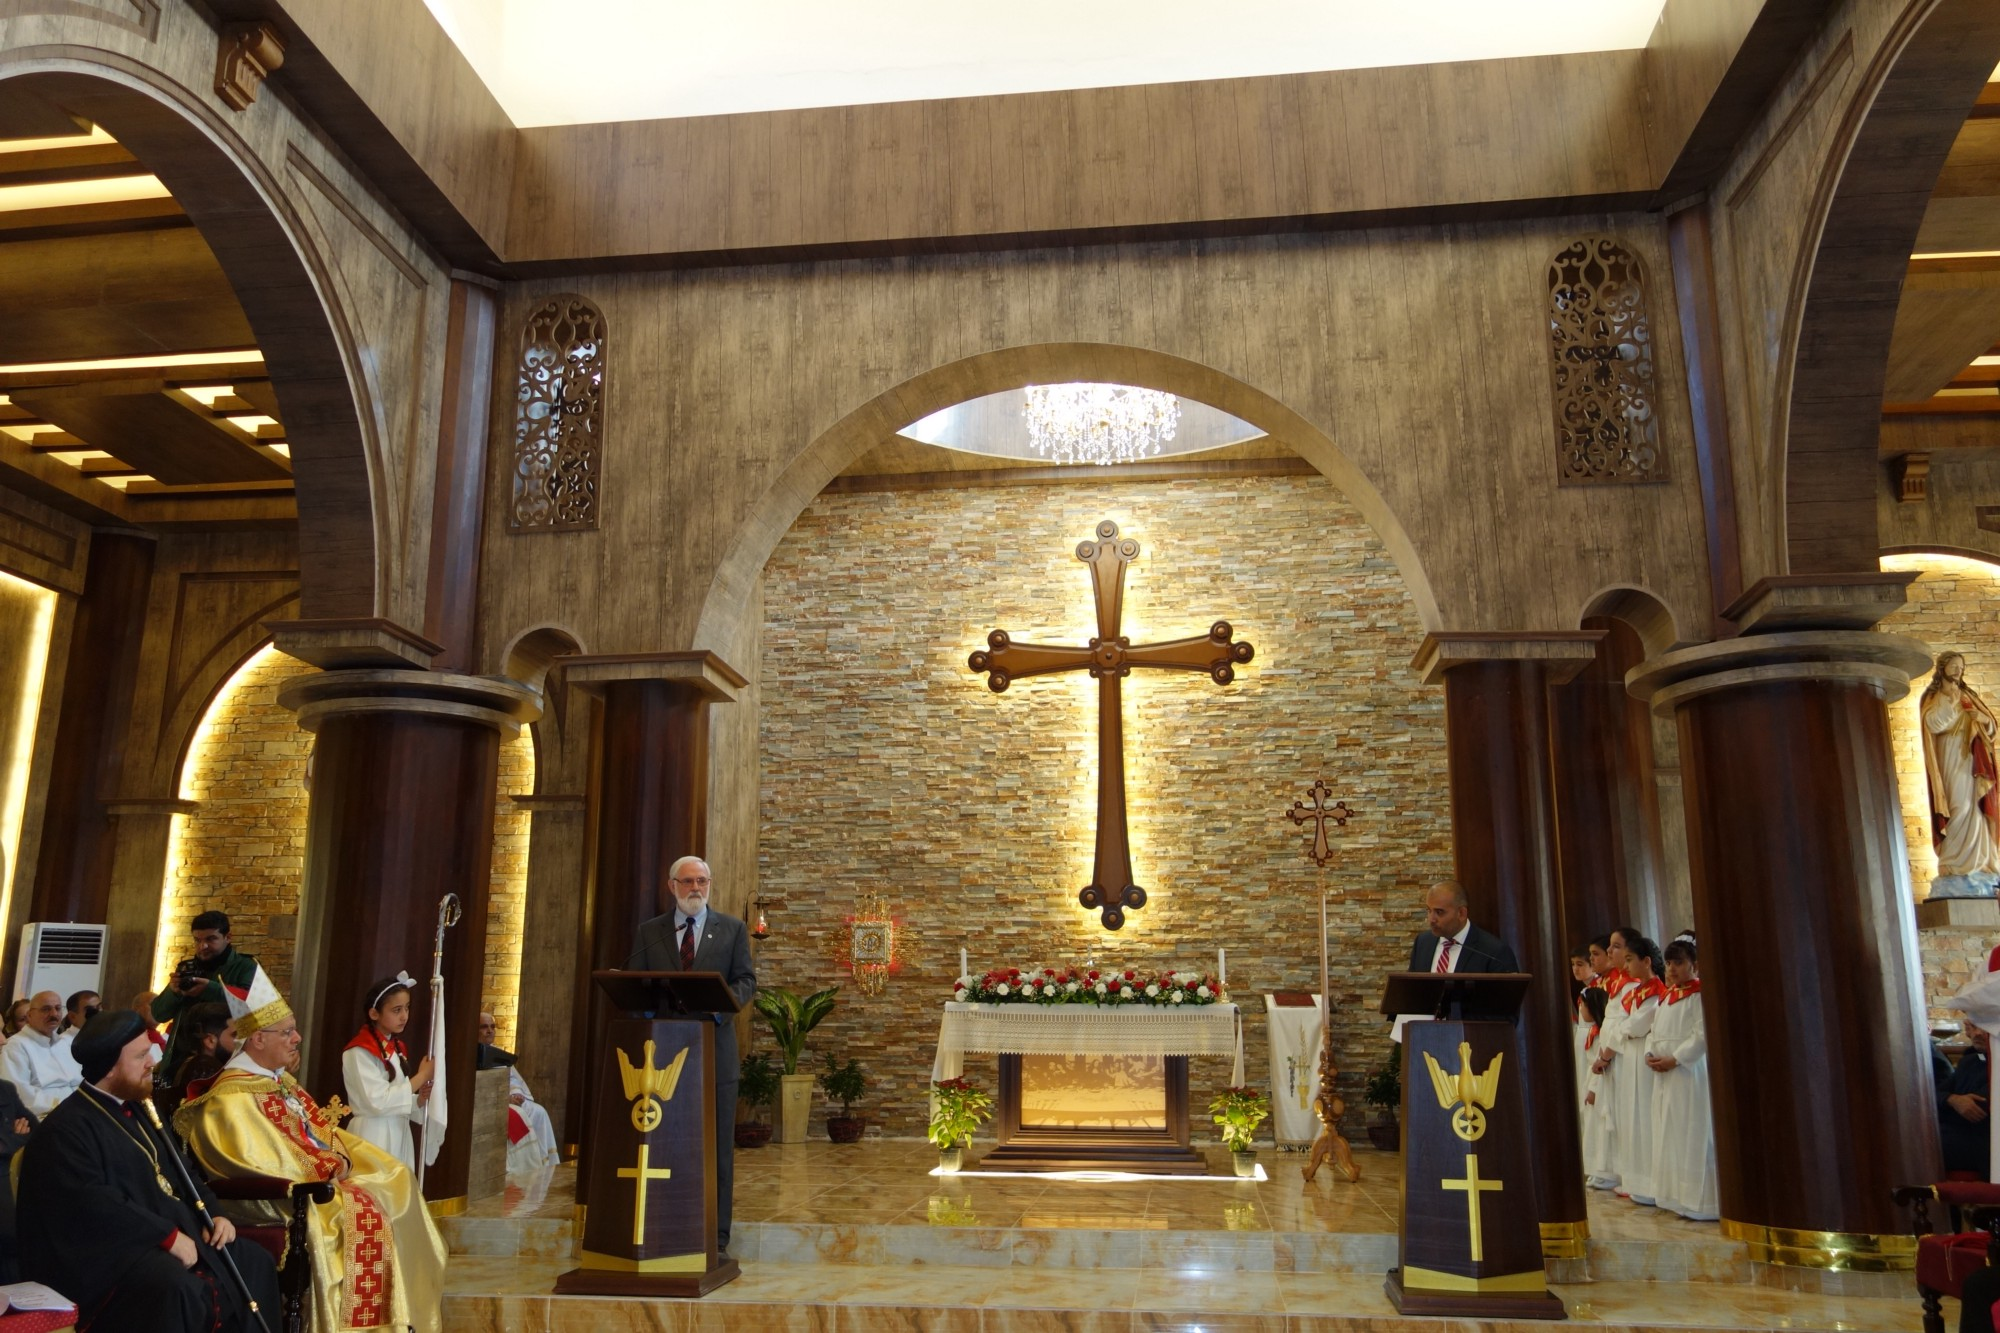 USAID Counselor Tom Staal attended the rededication of a refurbished Chaldean Catholic church, in the Ninewa Plains, that ISIS had looted and burned. He assured the congregation that the United States stands with them. / Nitika Sethi, USAID